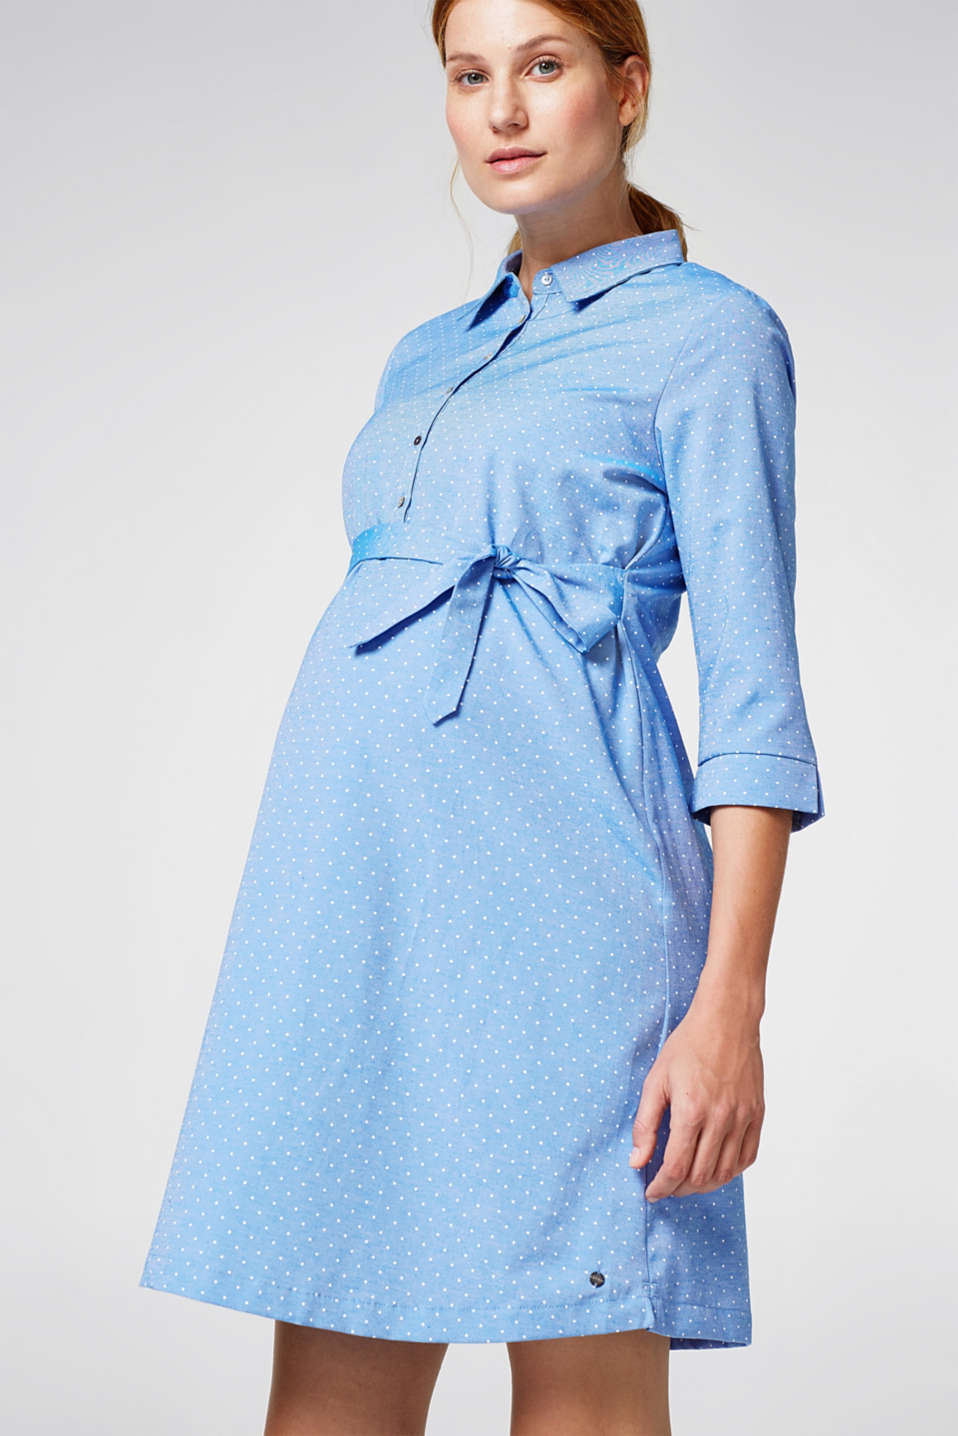 Esprit - Chambray dress with a polka dot pattern